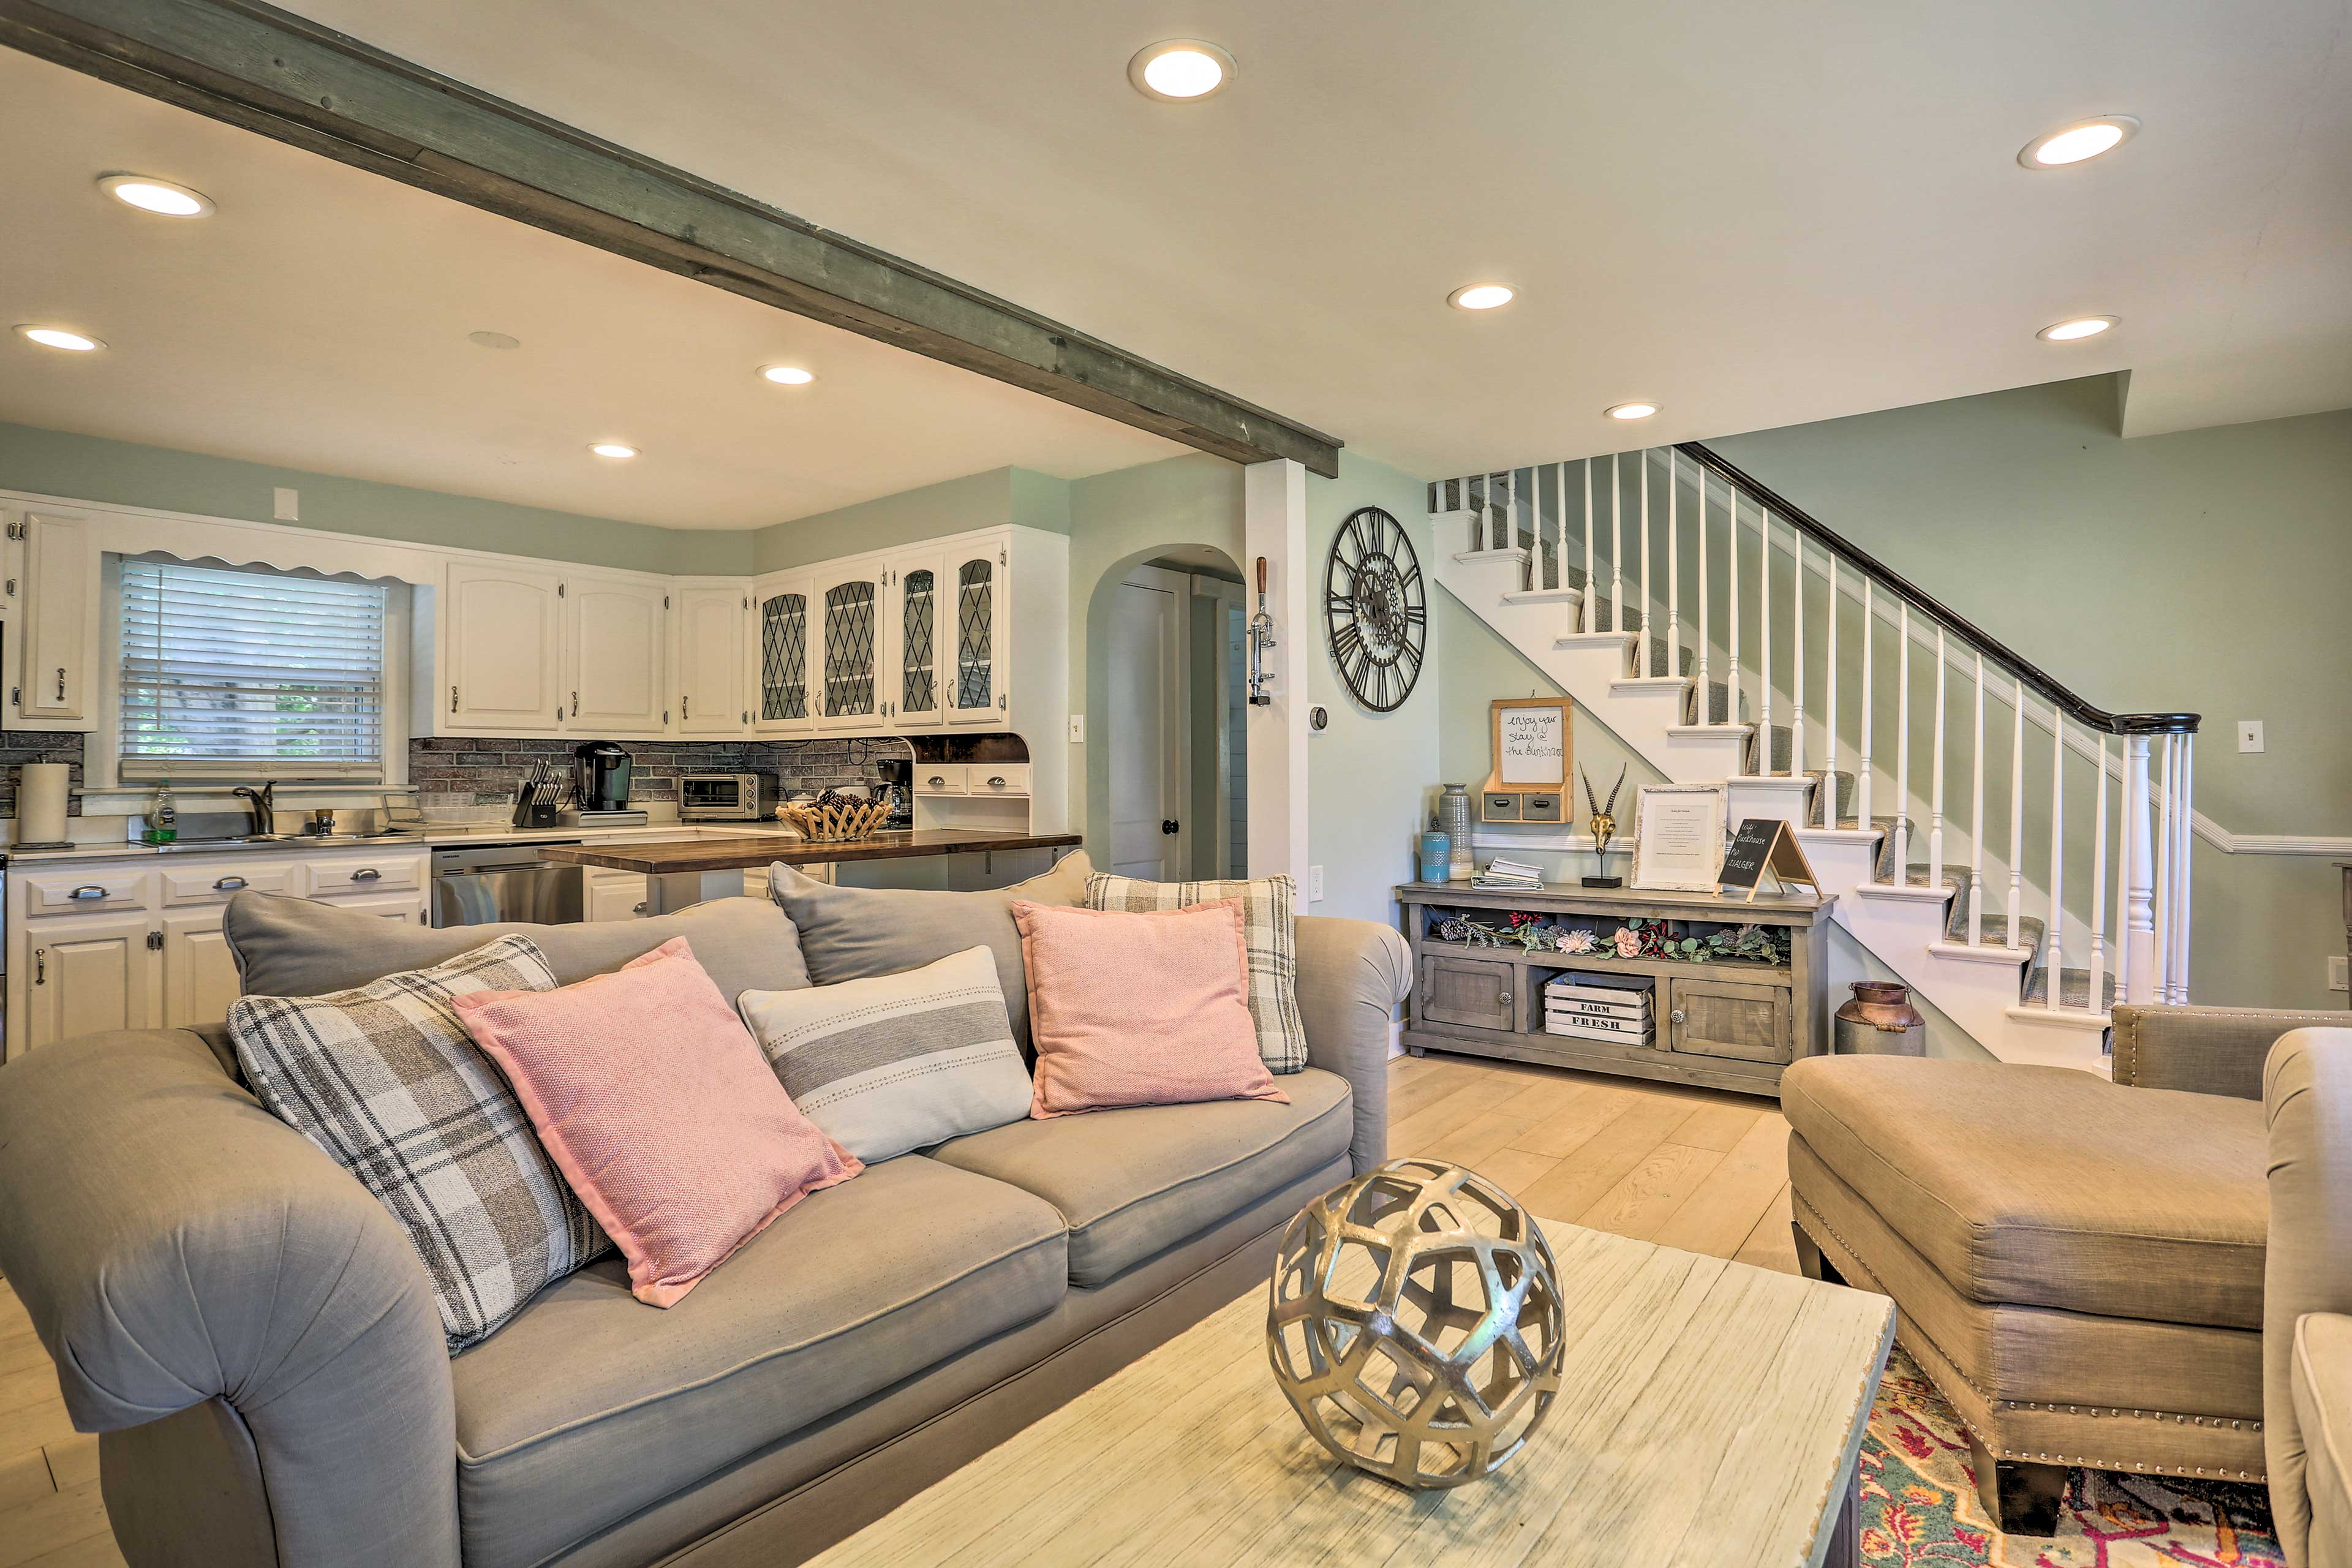 An open floor plan makes it easy for everyone to spend time together.